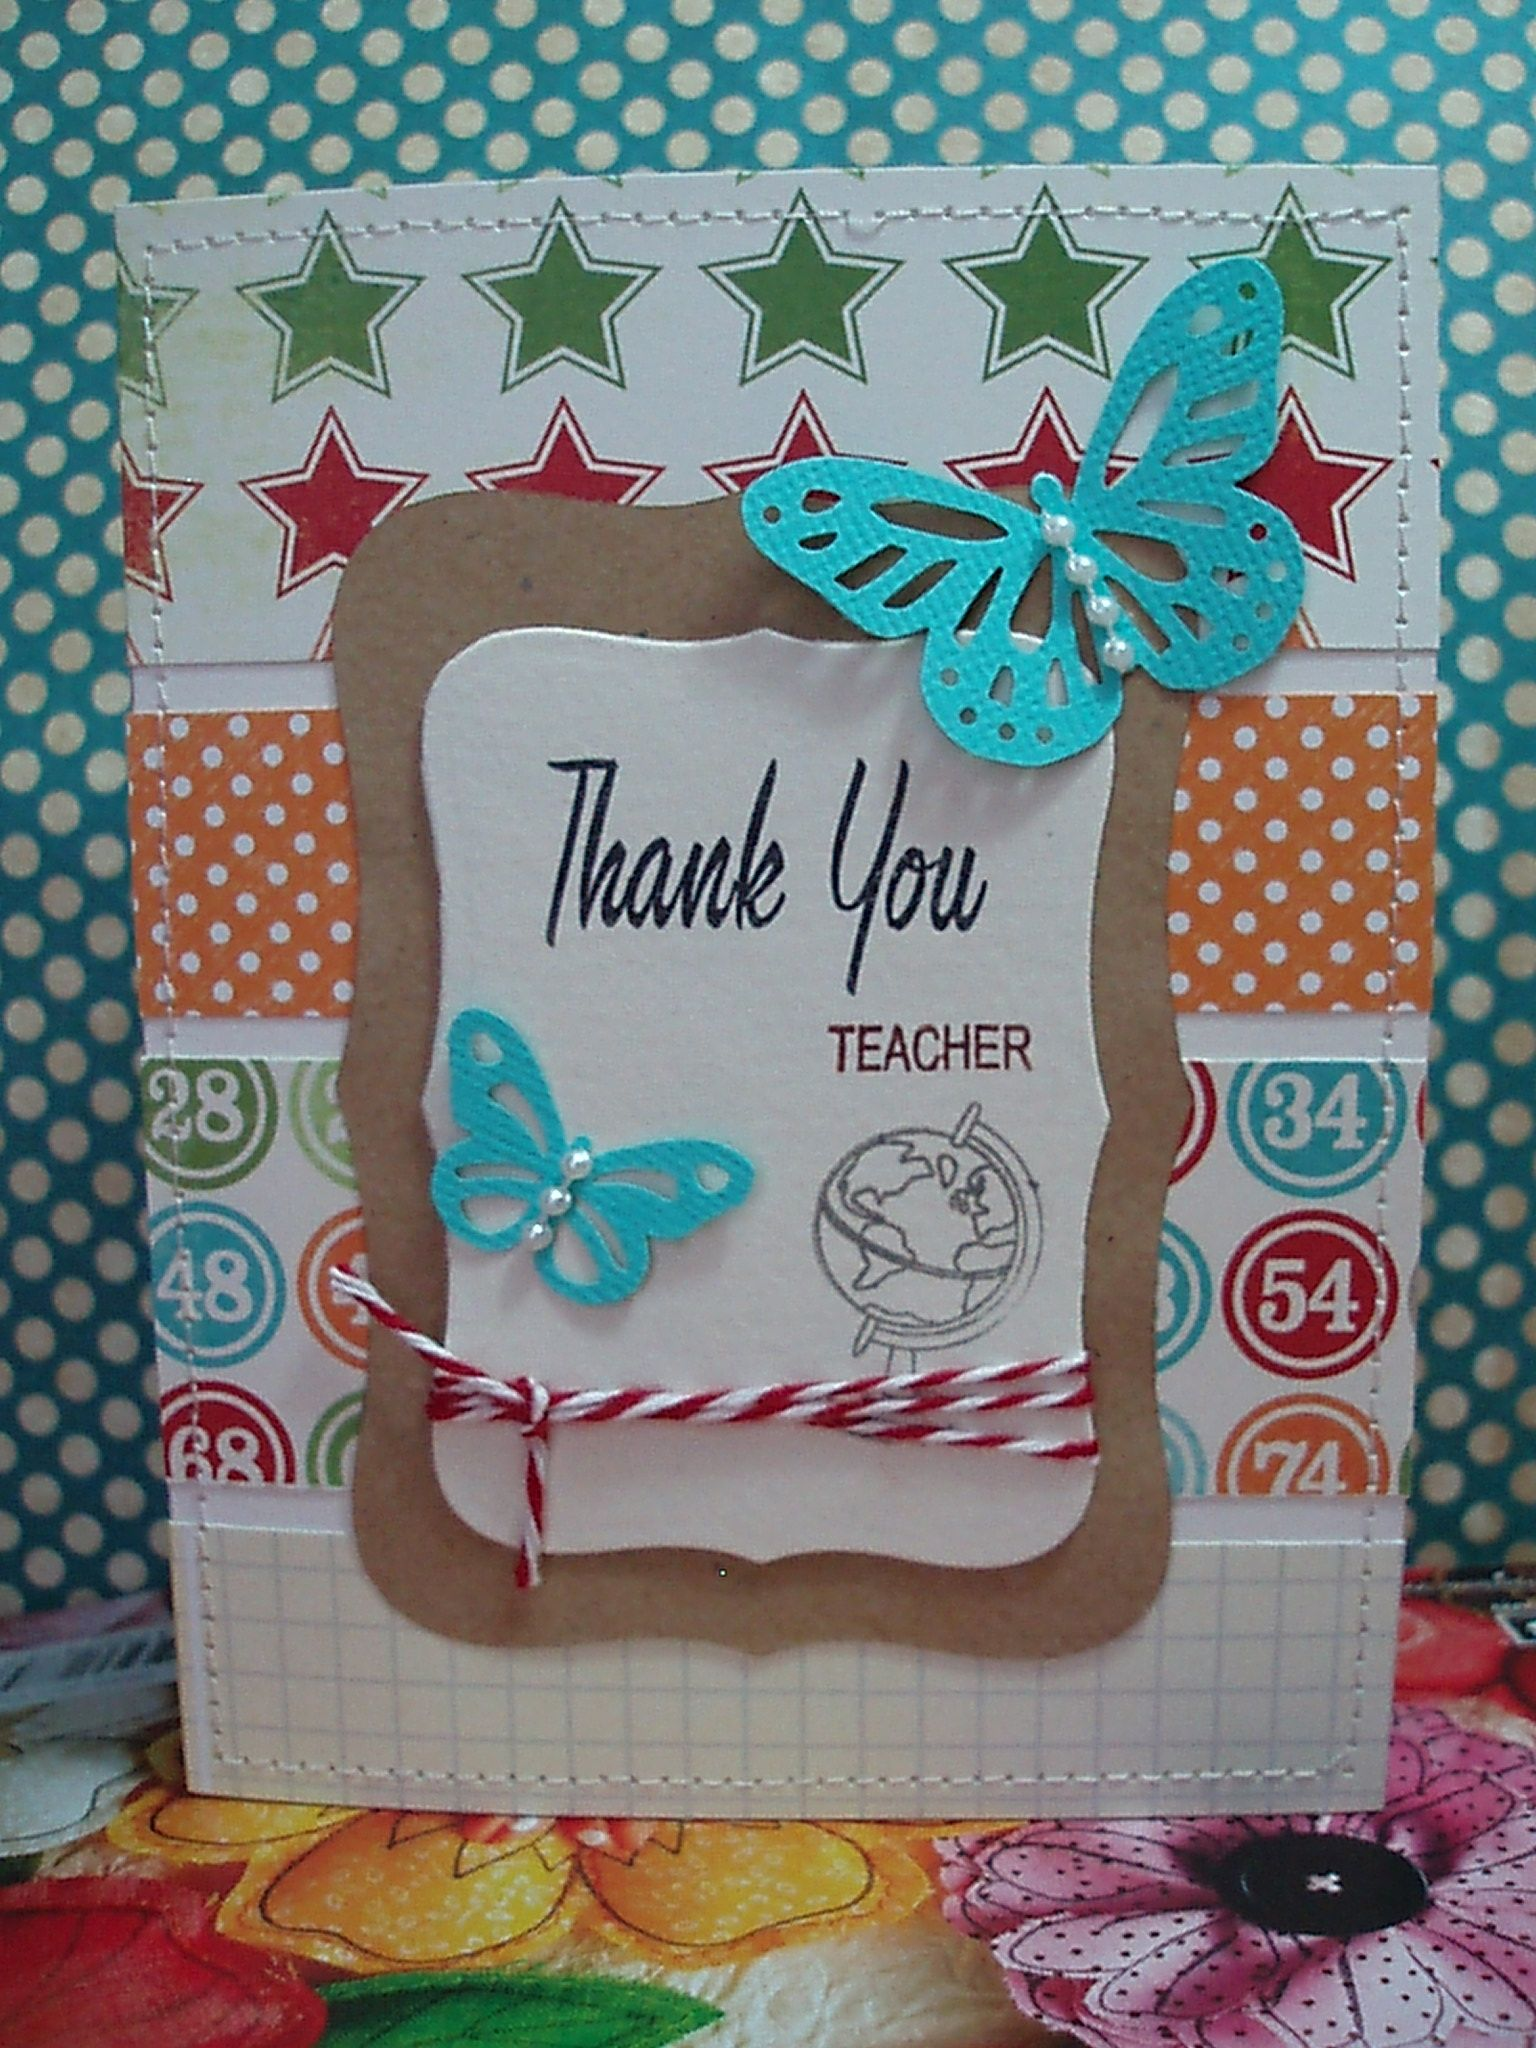 Teachers day cards for children 2015 teachers day pinterest teachers day cards for children 2015 kristyandbryce Image collections